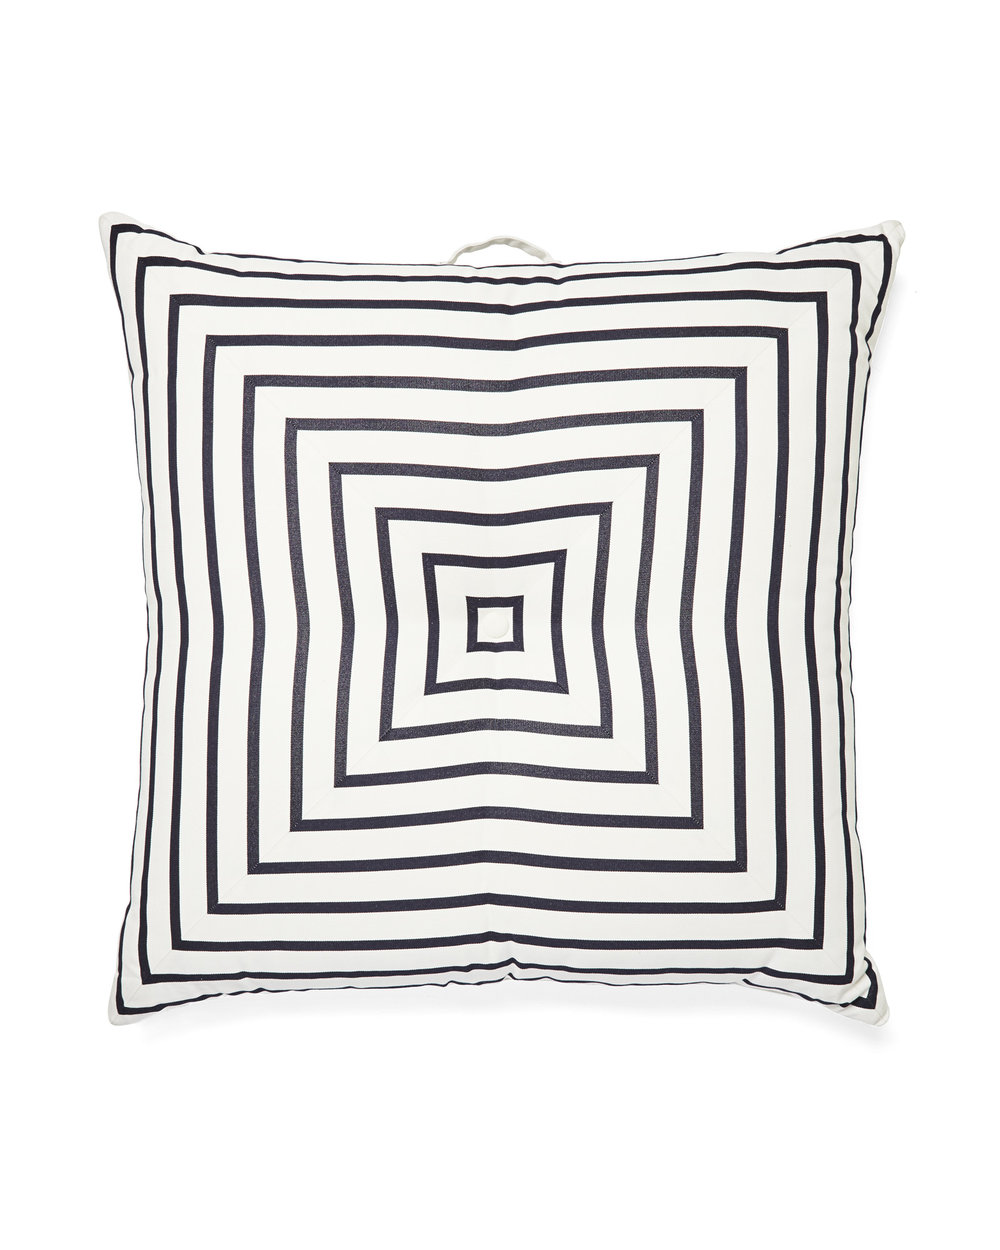 PR_Floor_Pillow_w_Side_Handle_Black_Stripe_MV_Crop_SH.jpg